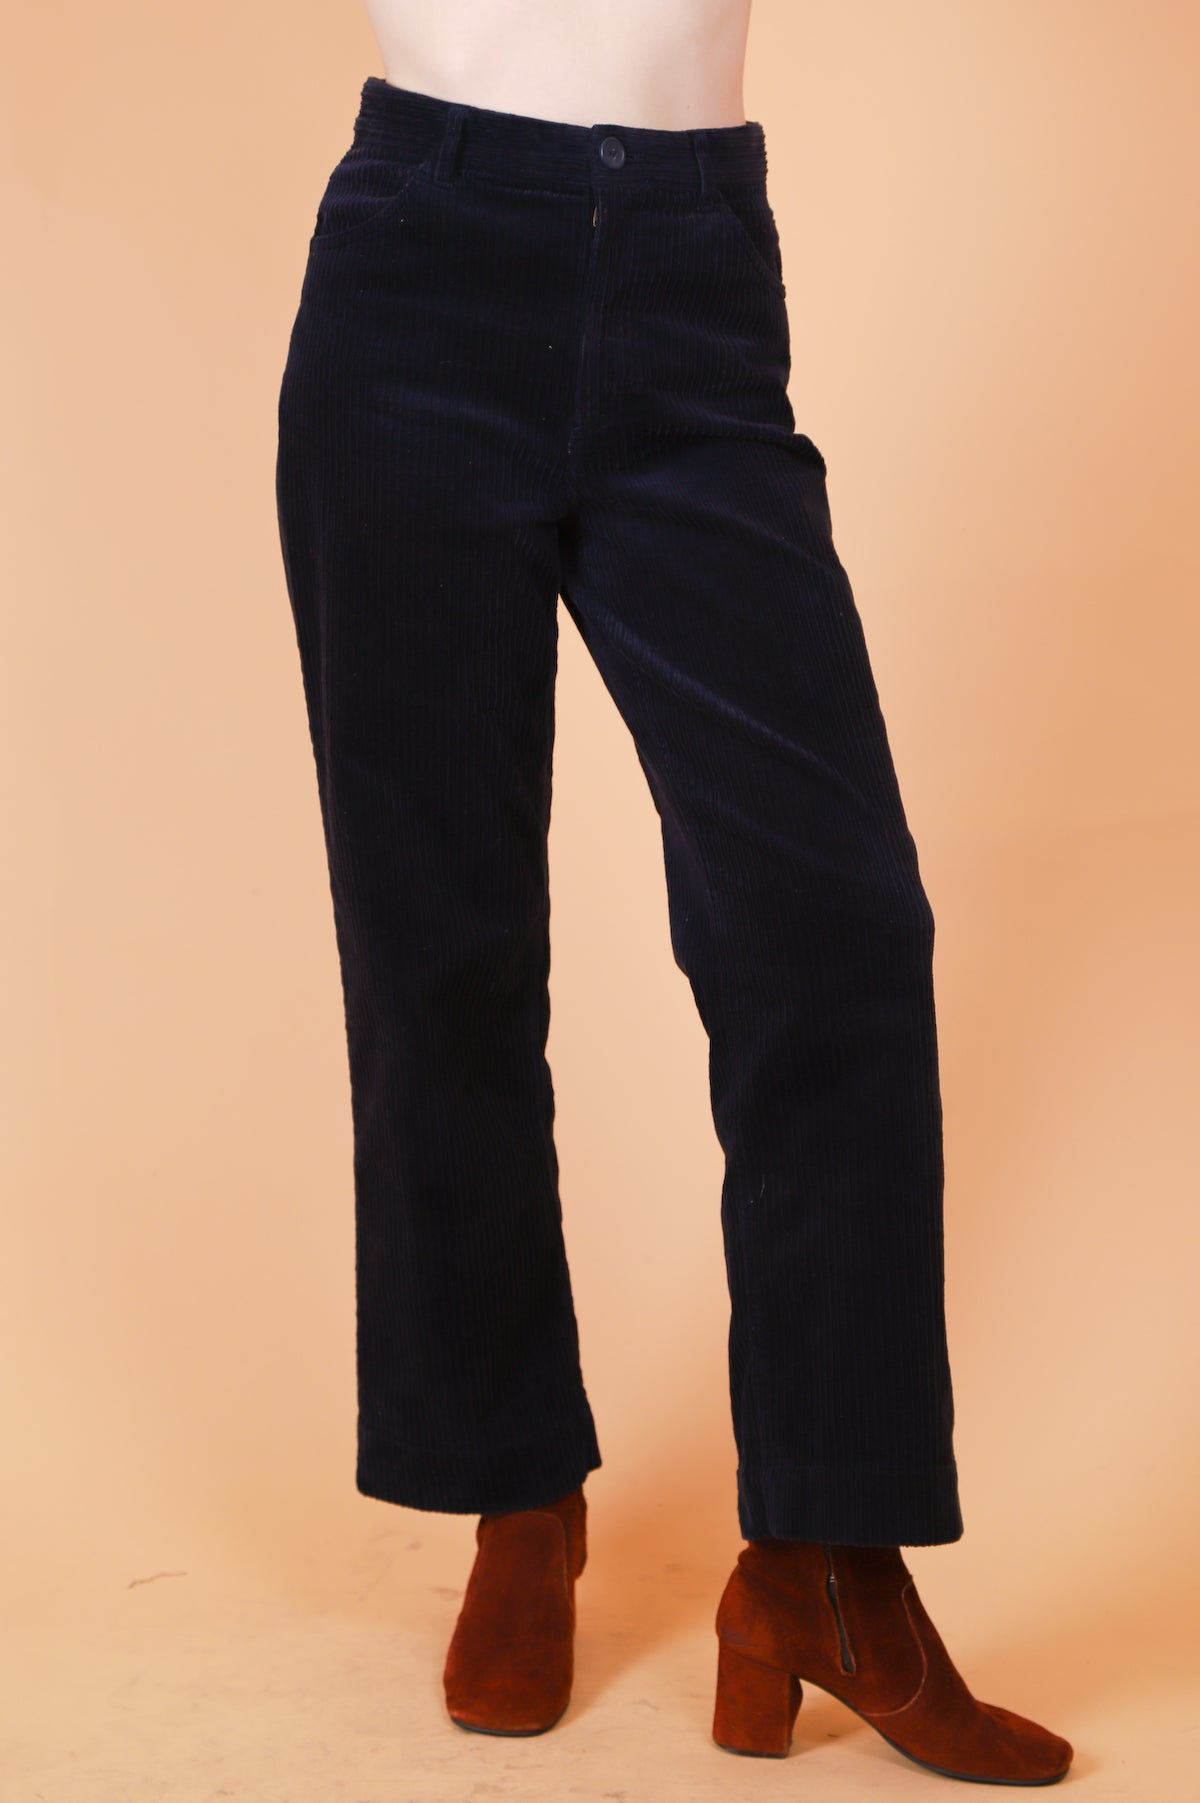 Vintage 1970's Midnight Blues Navy Cords